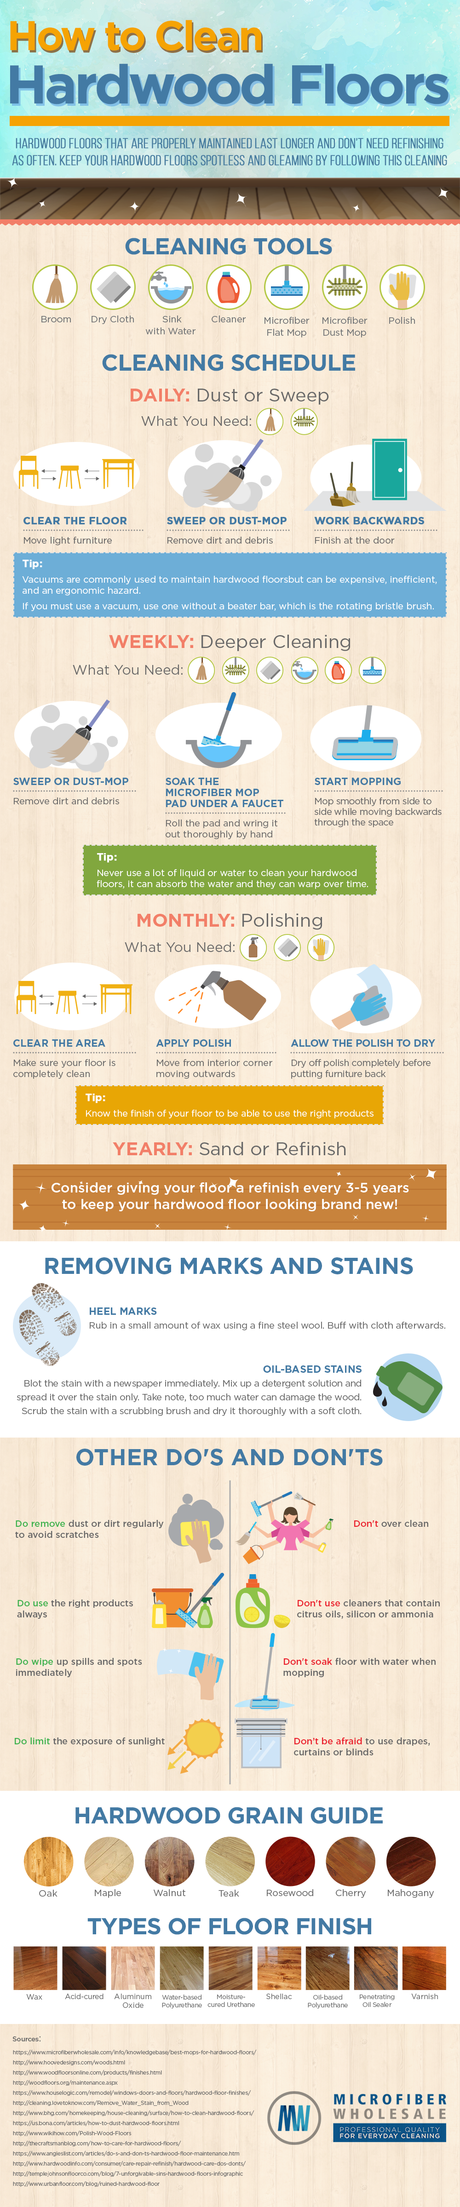 How To Keep Your Hardwood Floors Looking New [Infographic]